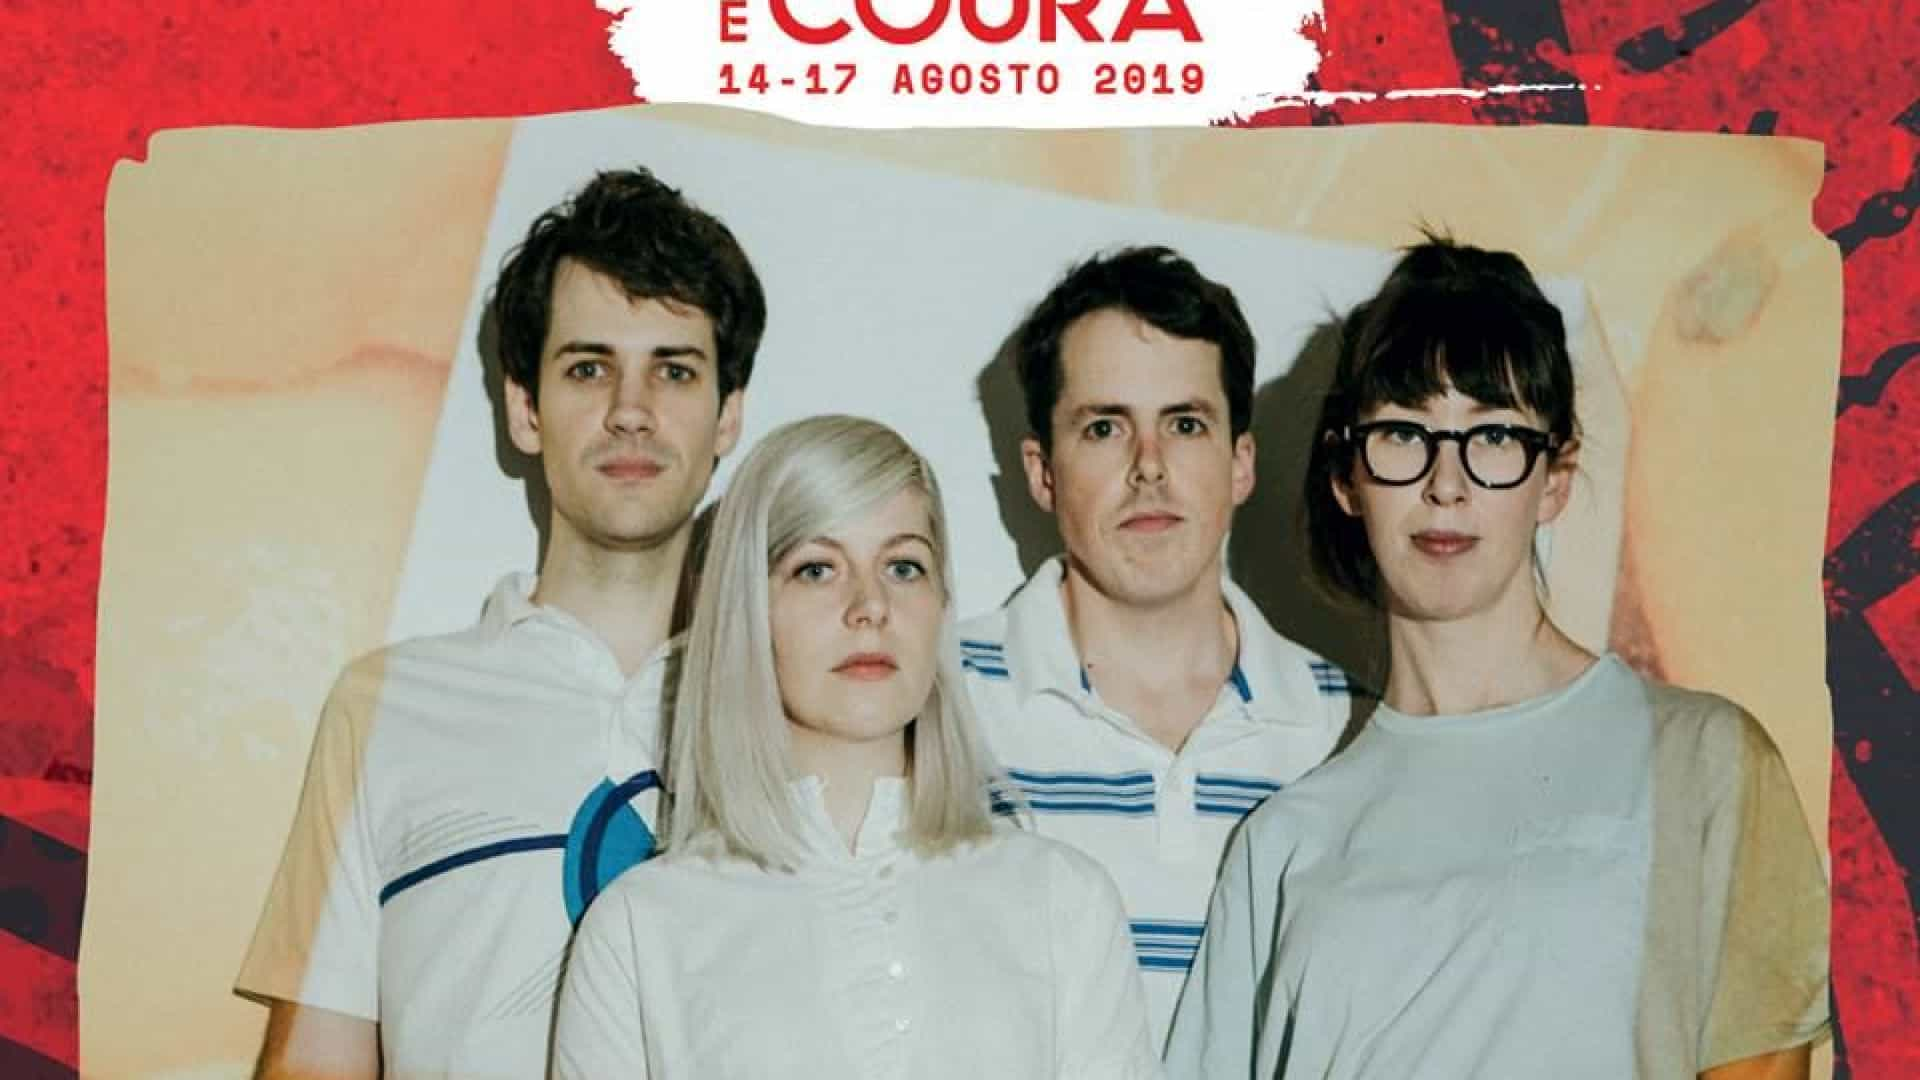 Alvvays confirmados no Vodafone Paredes de Coura